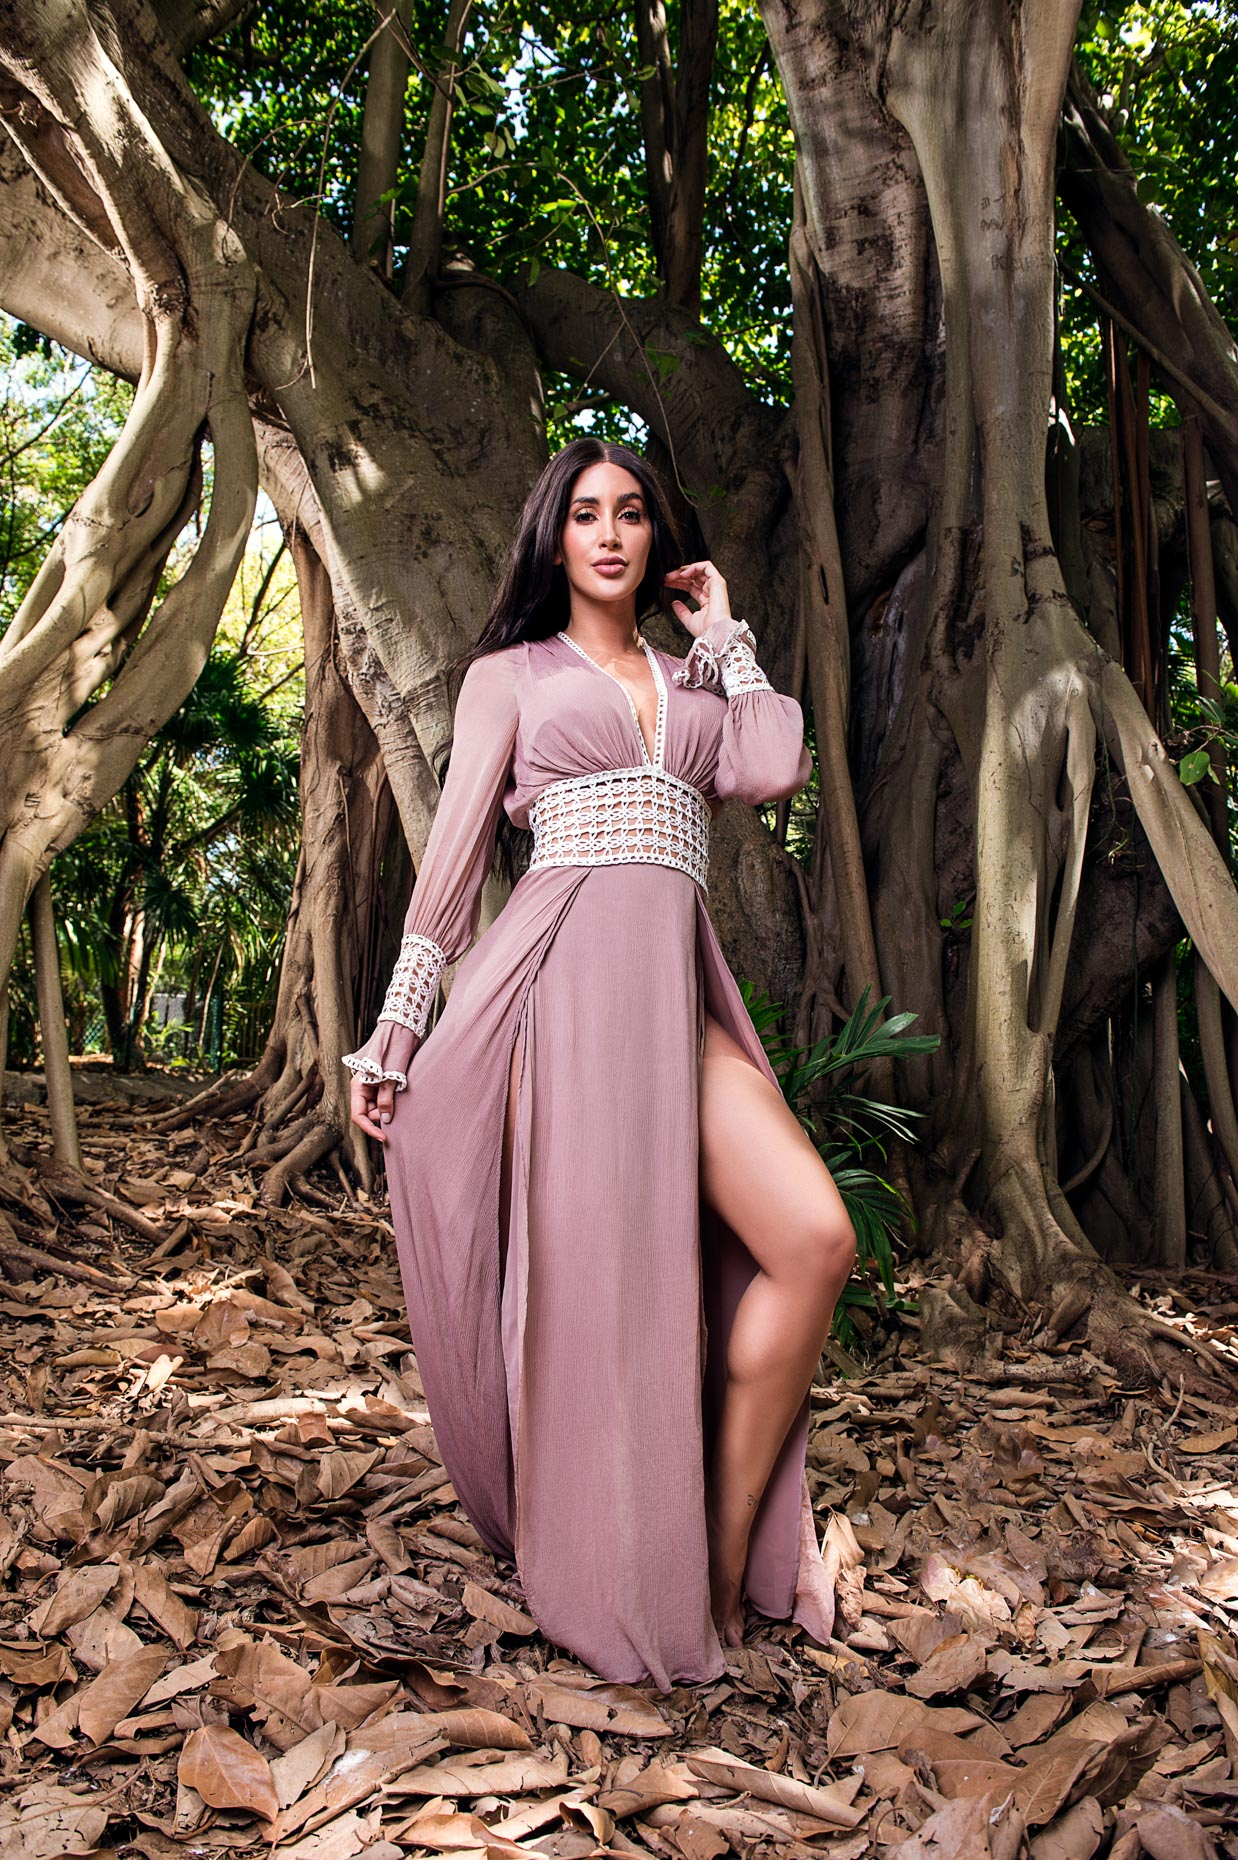 ClaudiaSampedro-344-Edit